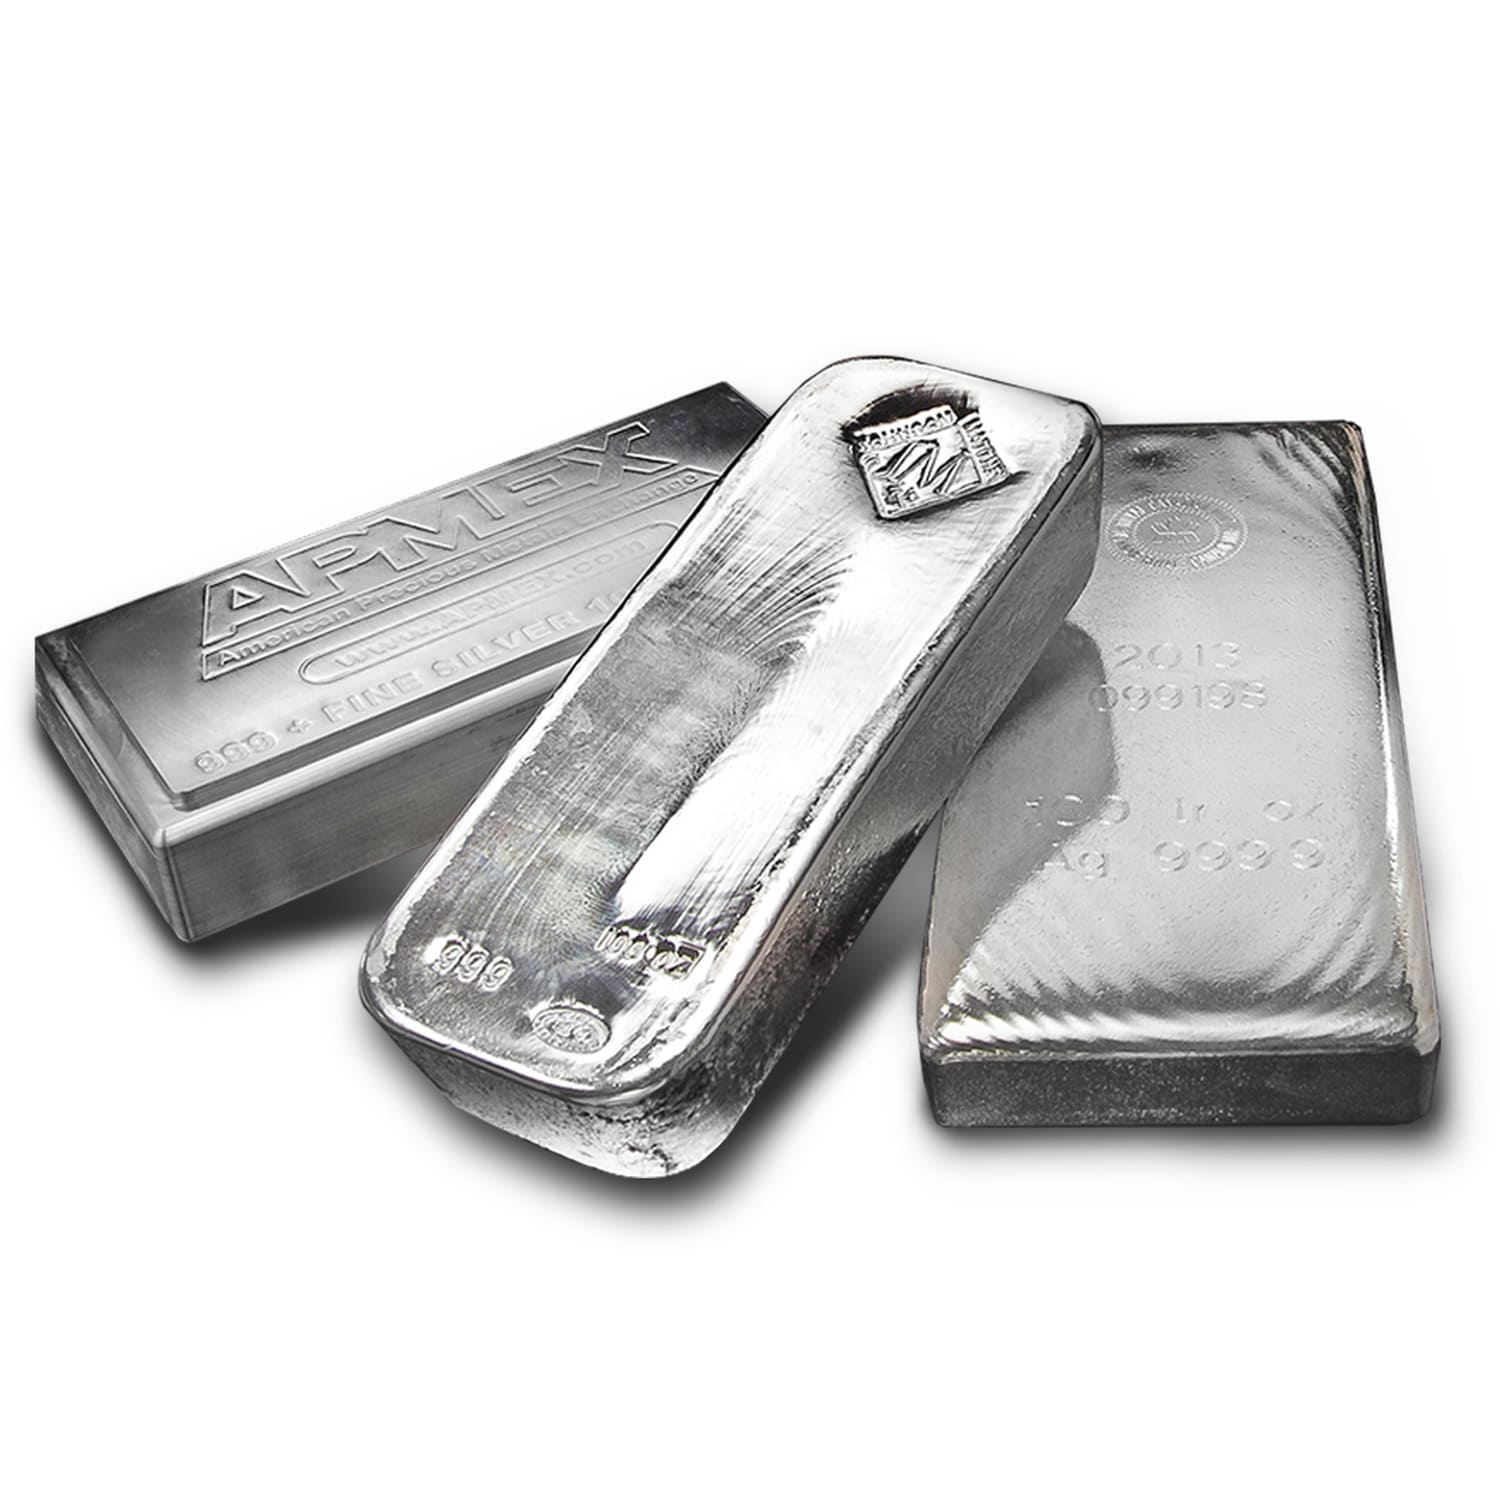 100.75 oz Silver Bar - Secondary Market